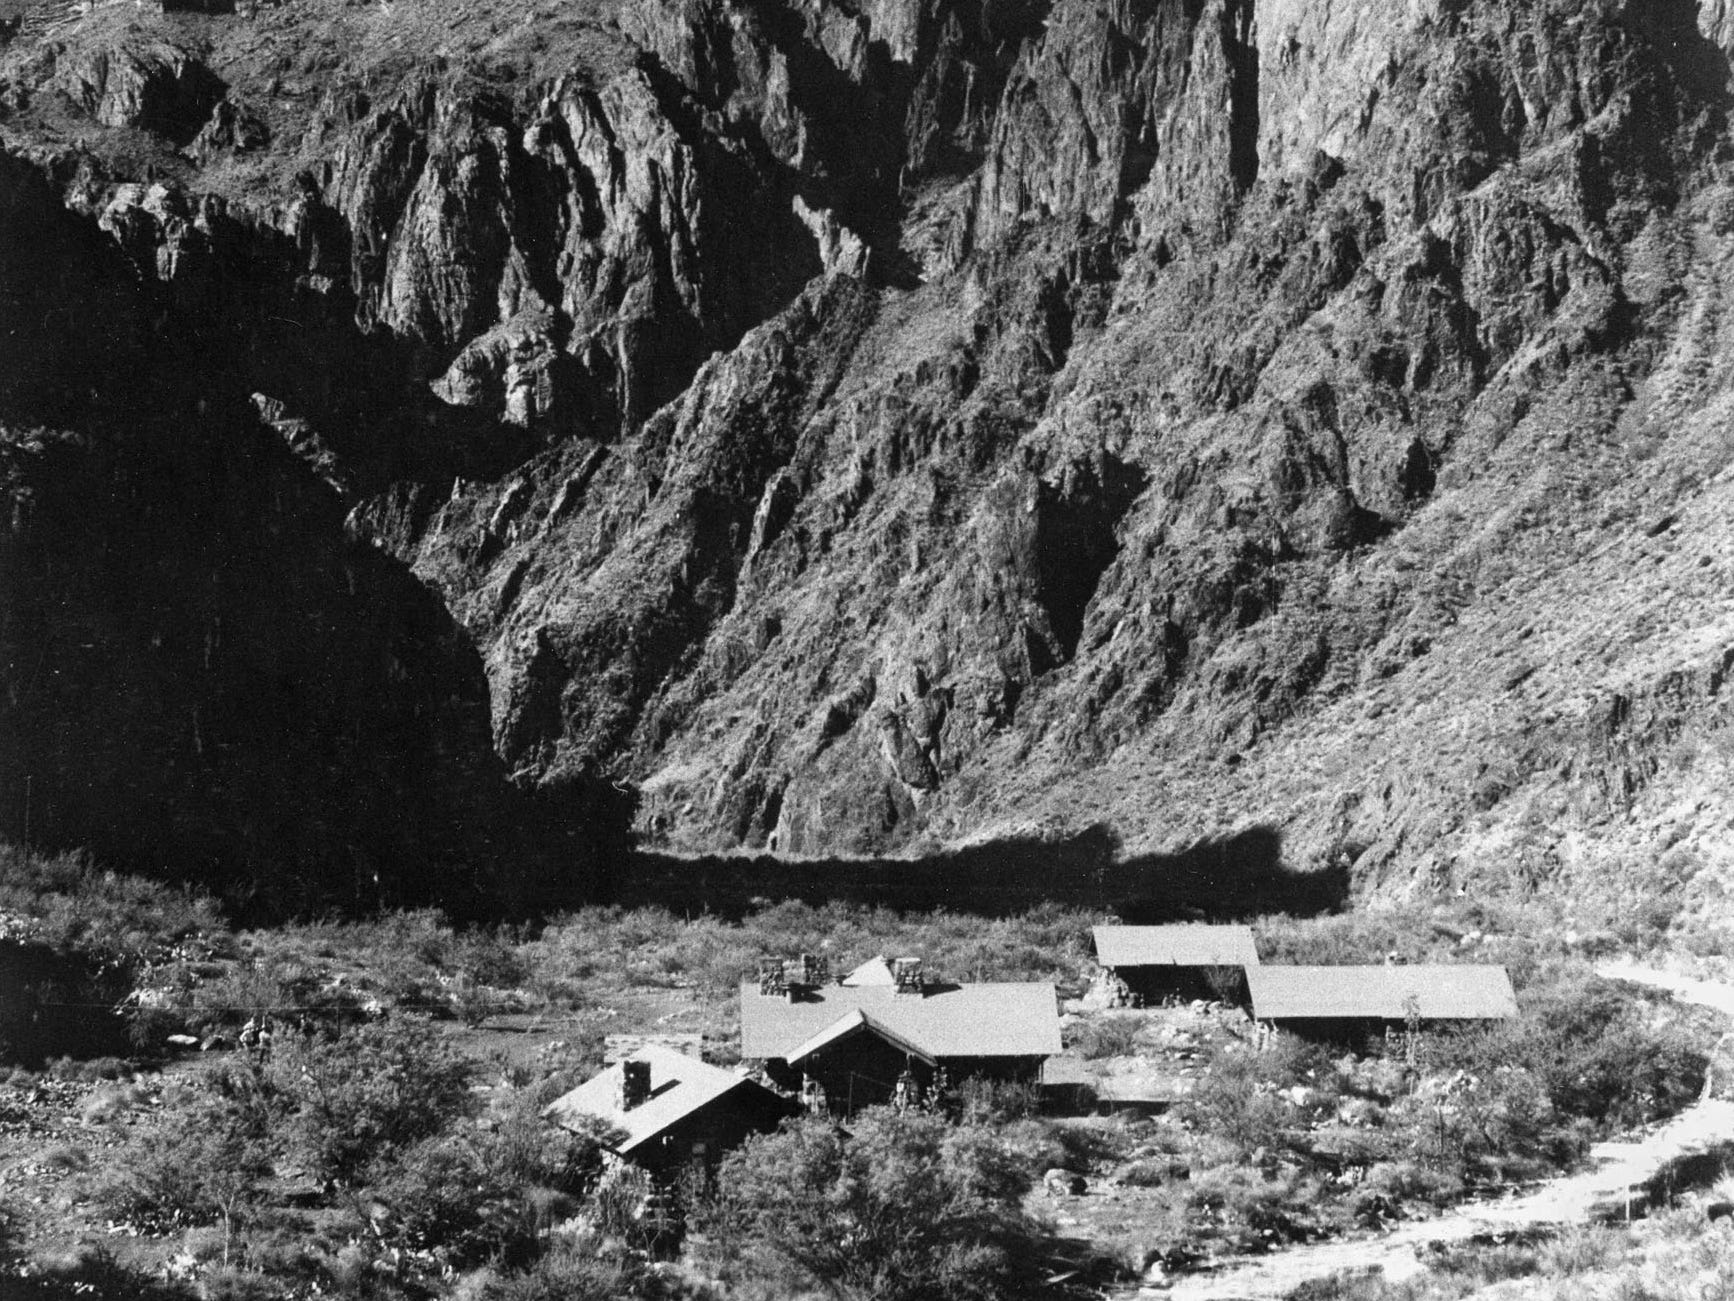 Phantom Ranch at the bottom of the Grand Canyon, as seen in 1922.